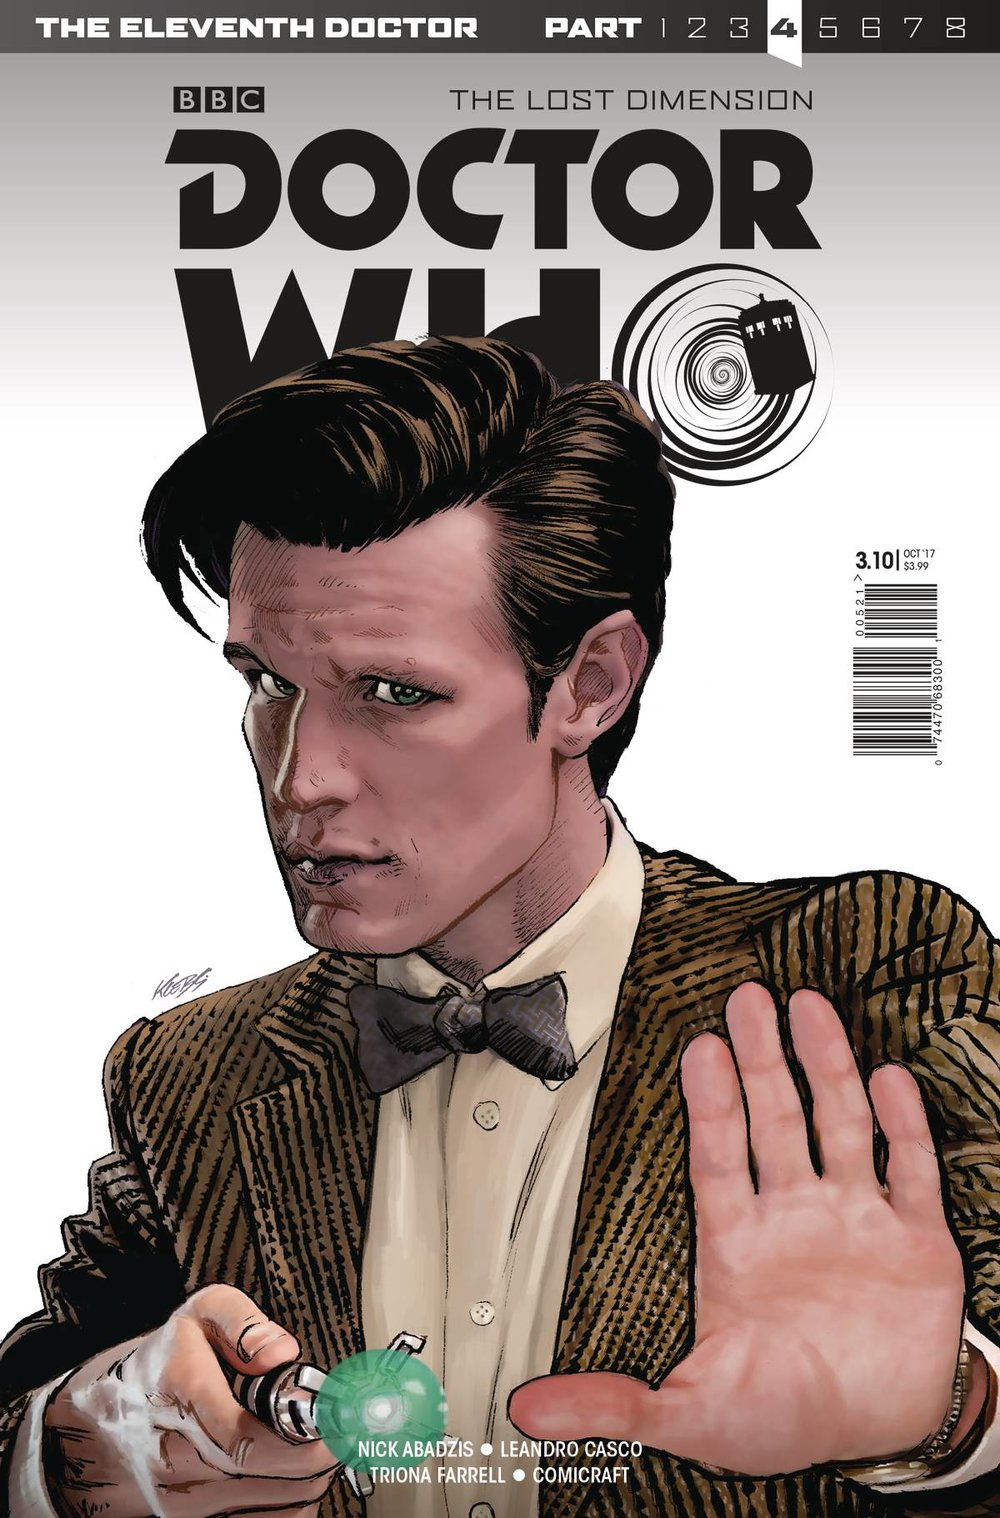 DOCTOR WHO 11TH YEAR THREE 10 CVR A KLEBS JR.jpg